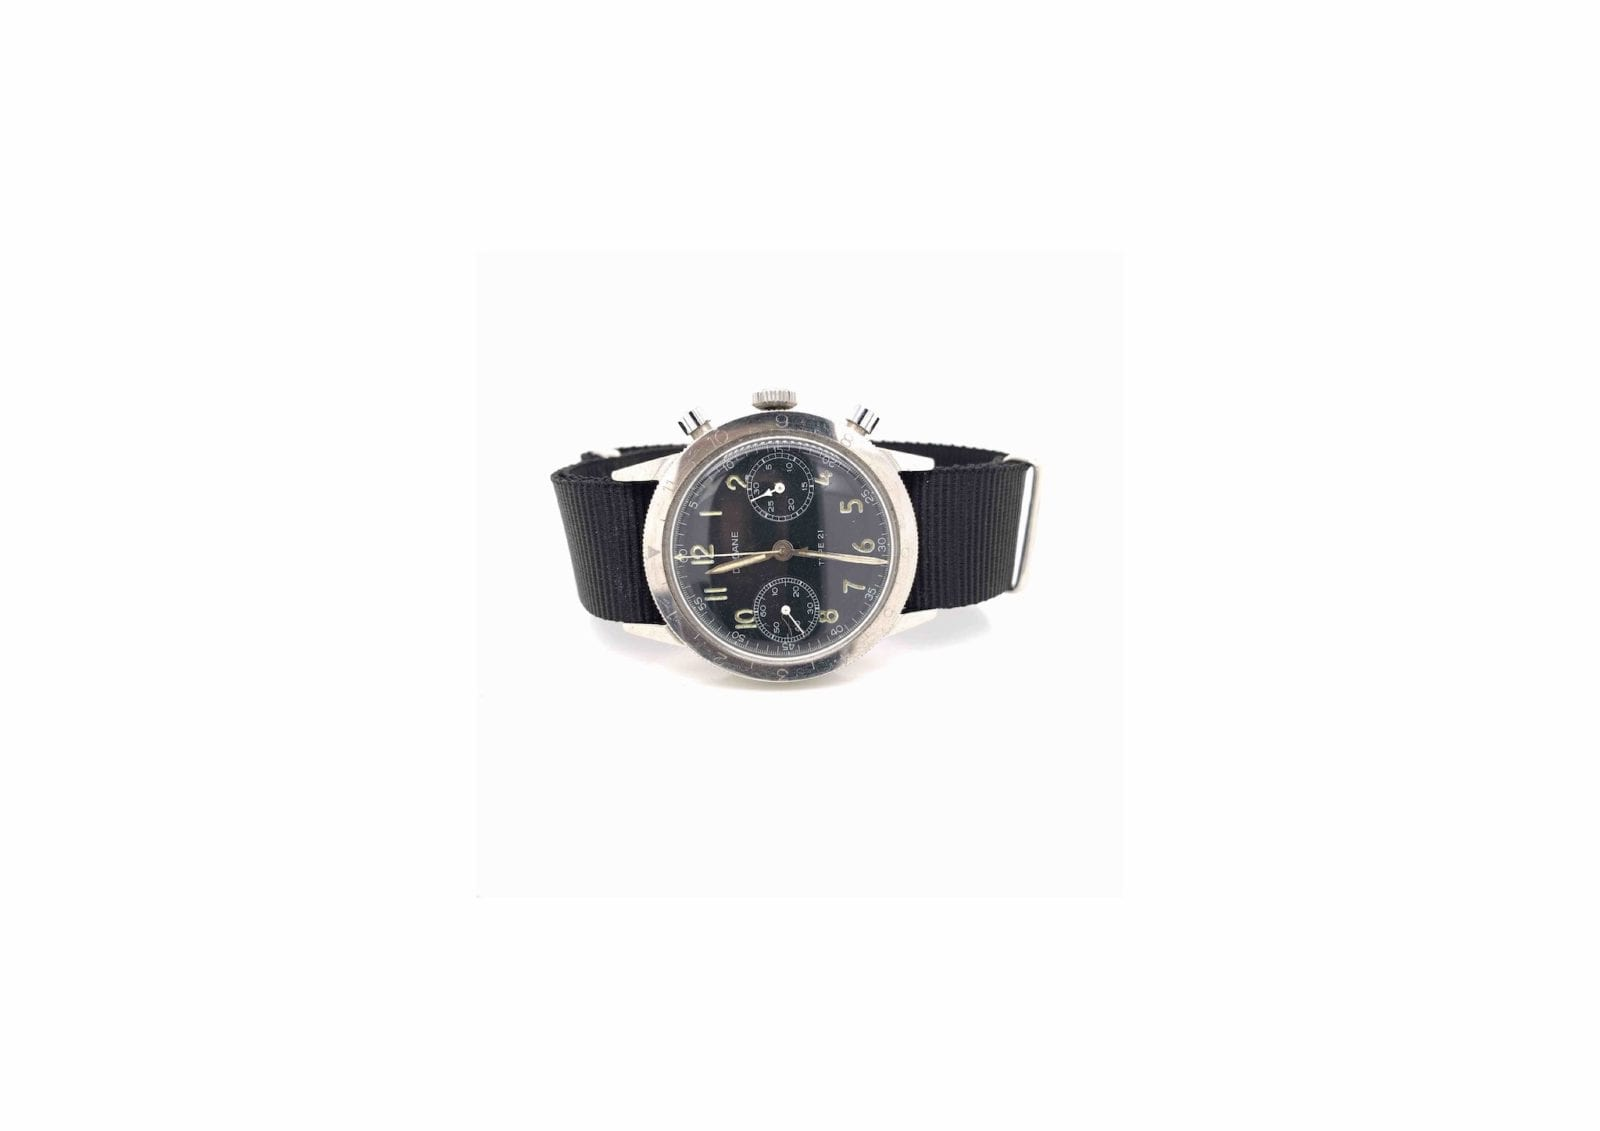 Montre ancienne occasion Type 21 Chrono